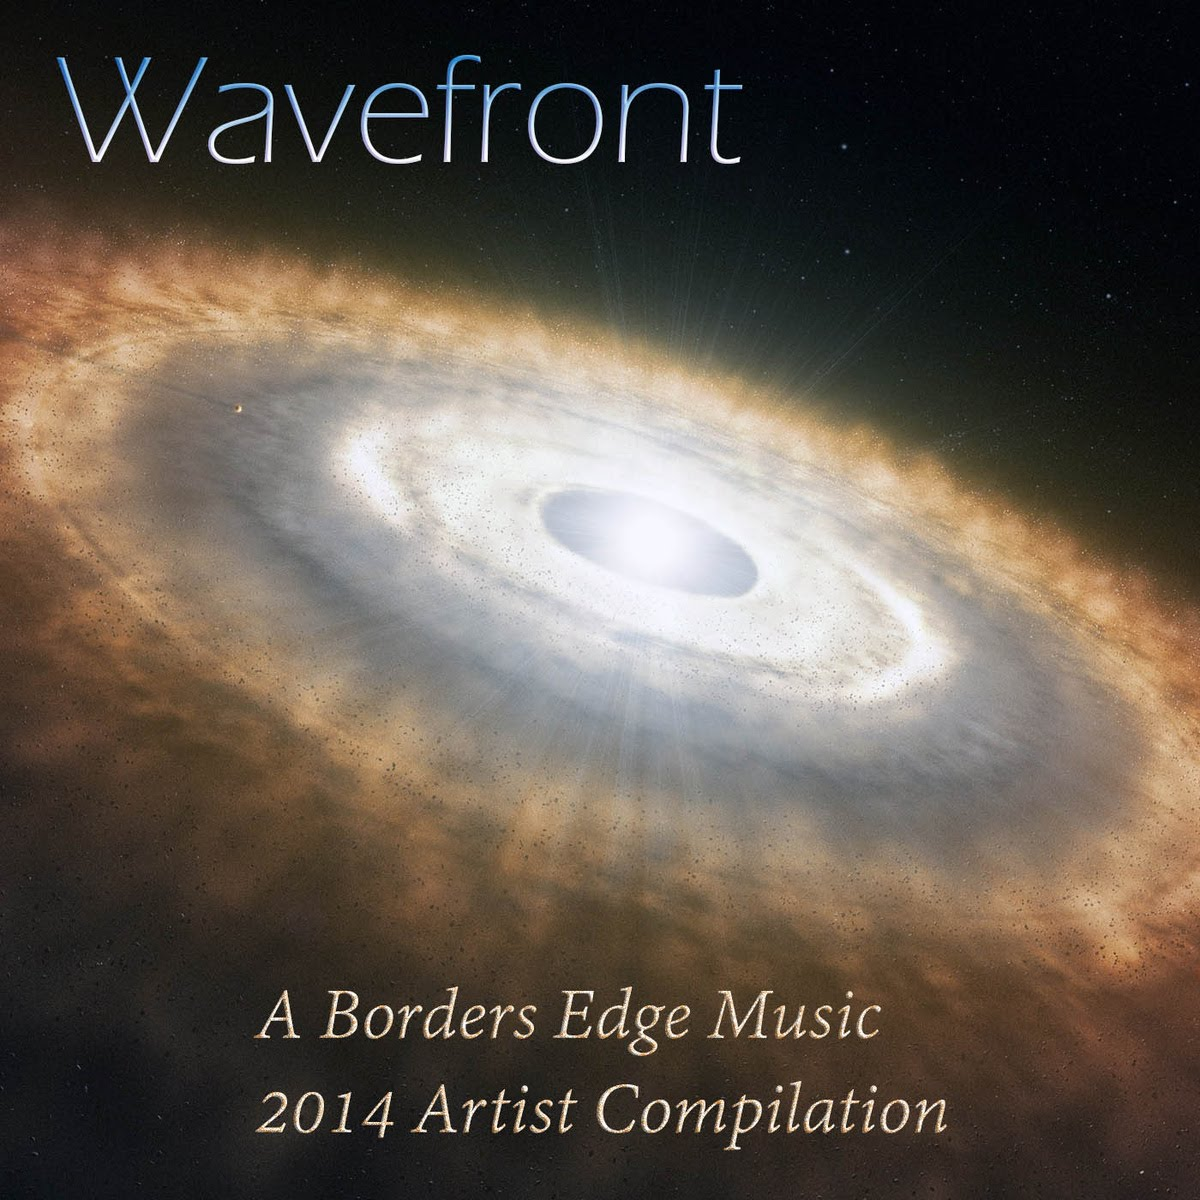 https://bordersedge.bandcamp.com/album/wavefront-a-borders-edge-music-2014-compilation